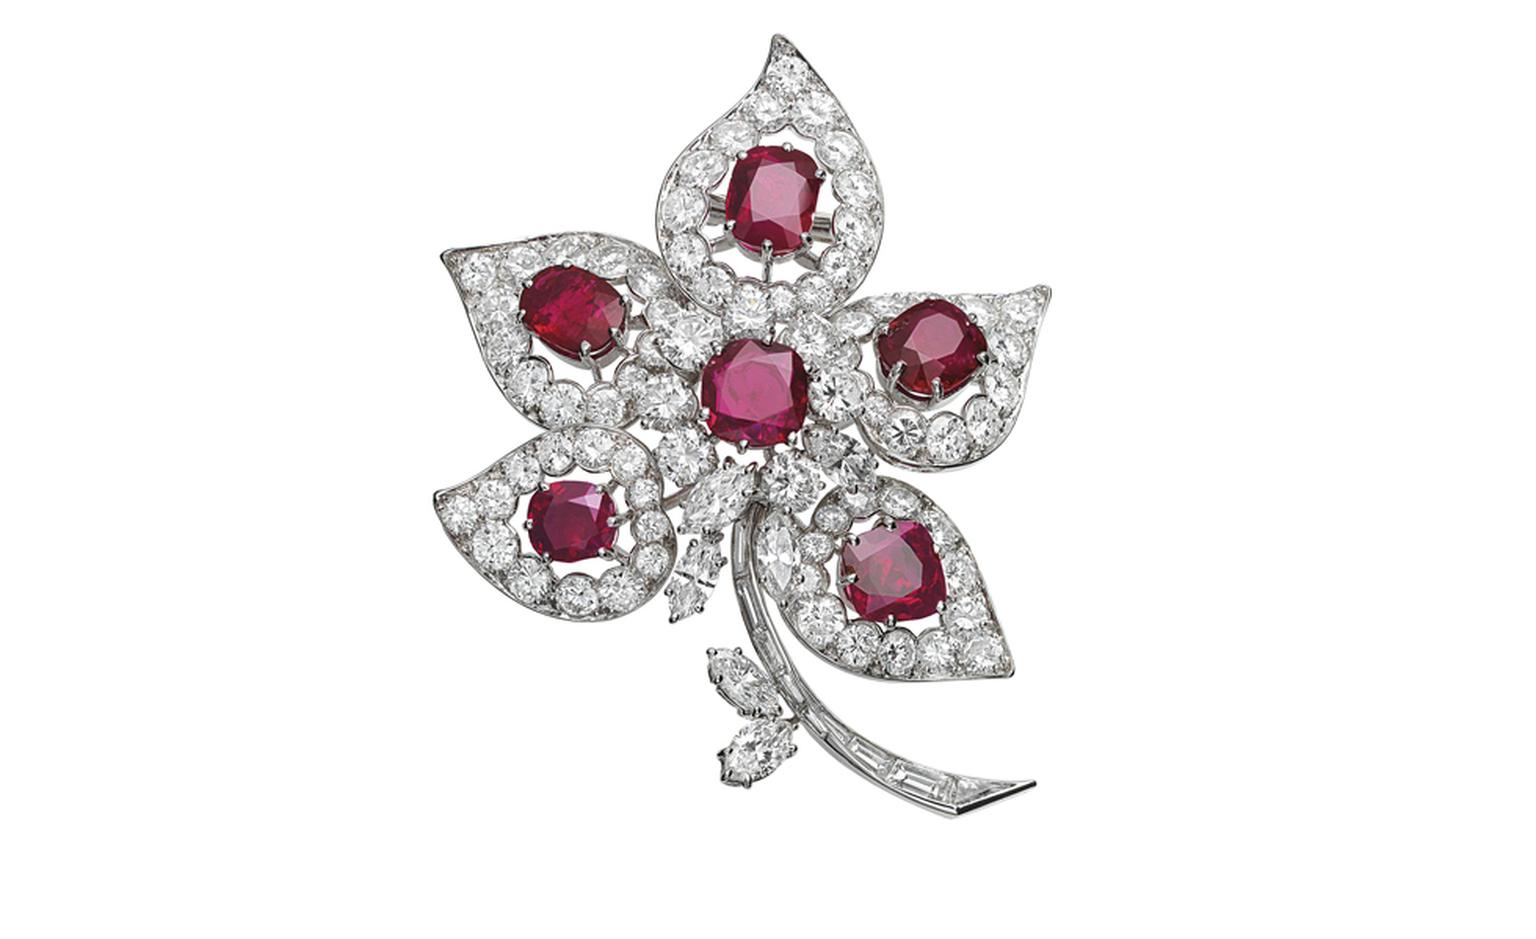 Van Cleef & Arpels Ruby flower in opera singer Maria Callas' Collection. Platinum, rubies & diamonds, 1967.